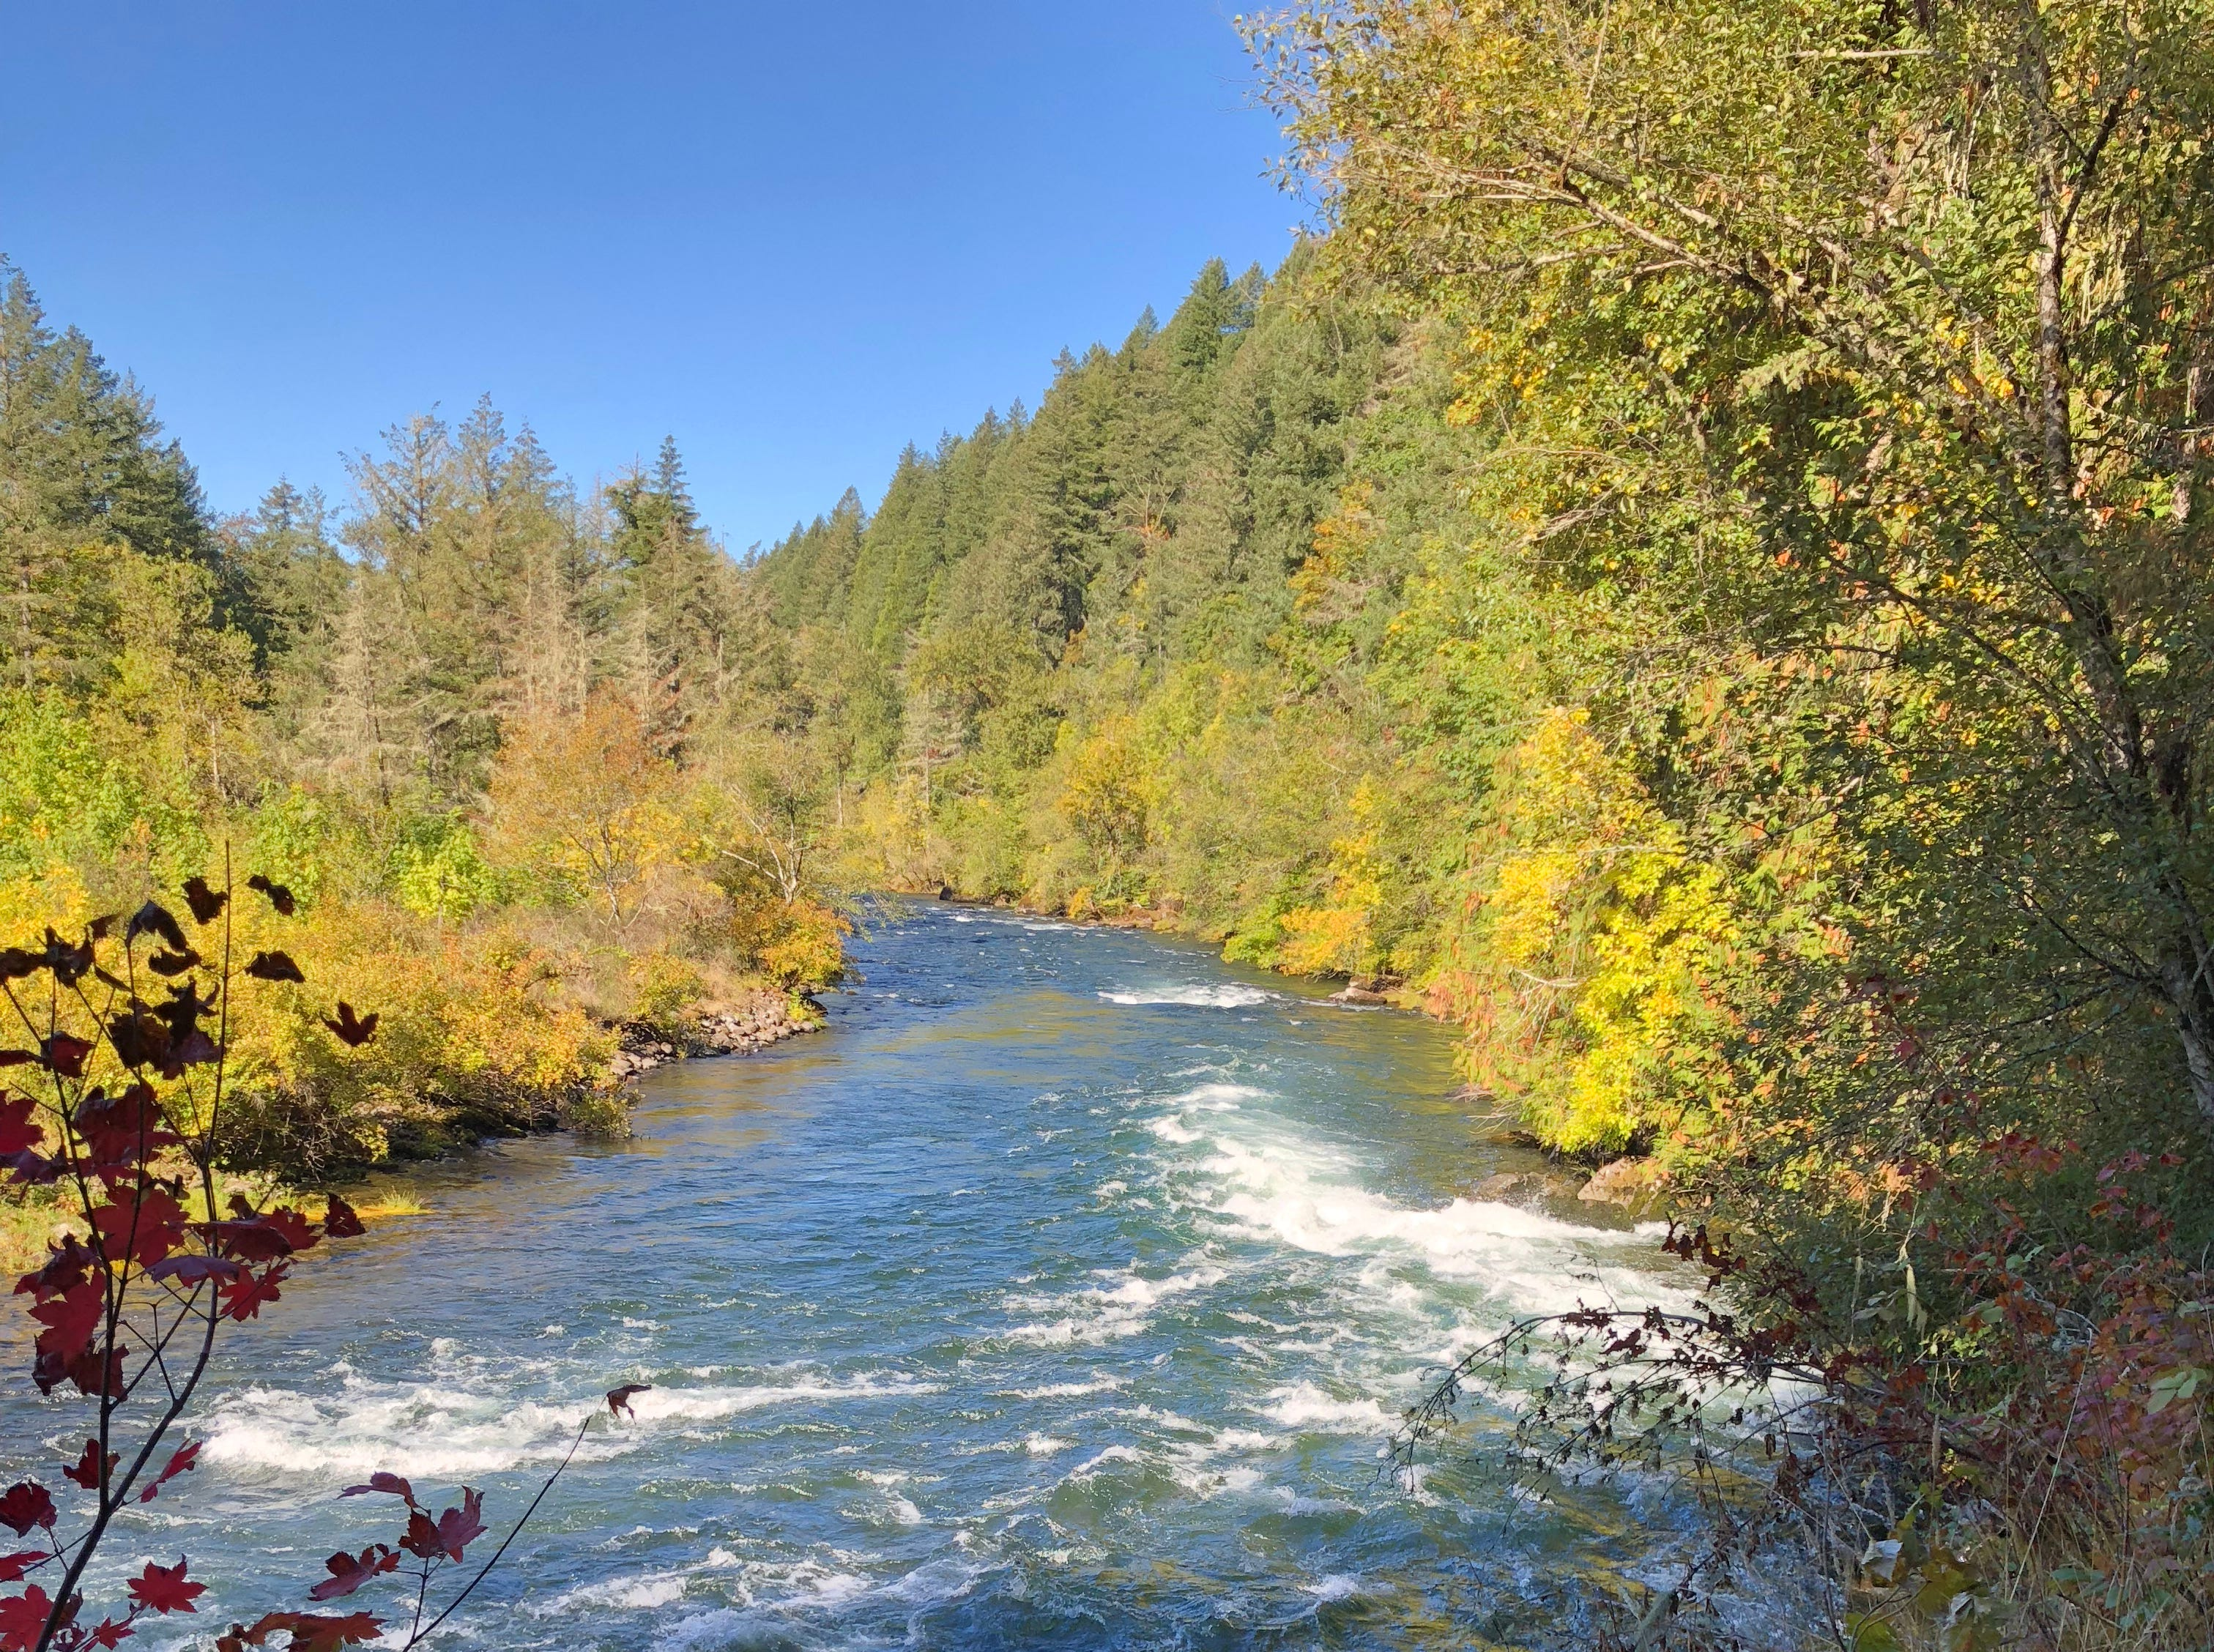 Work by crews this summer opened up a new trail and view point in Minto Park on the North Santiam River.